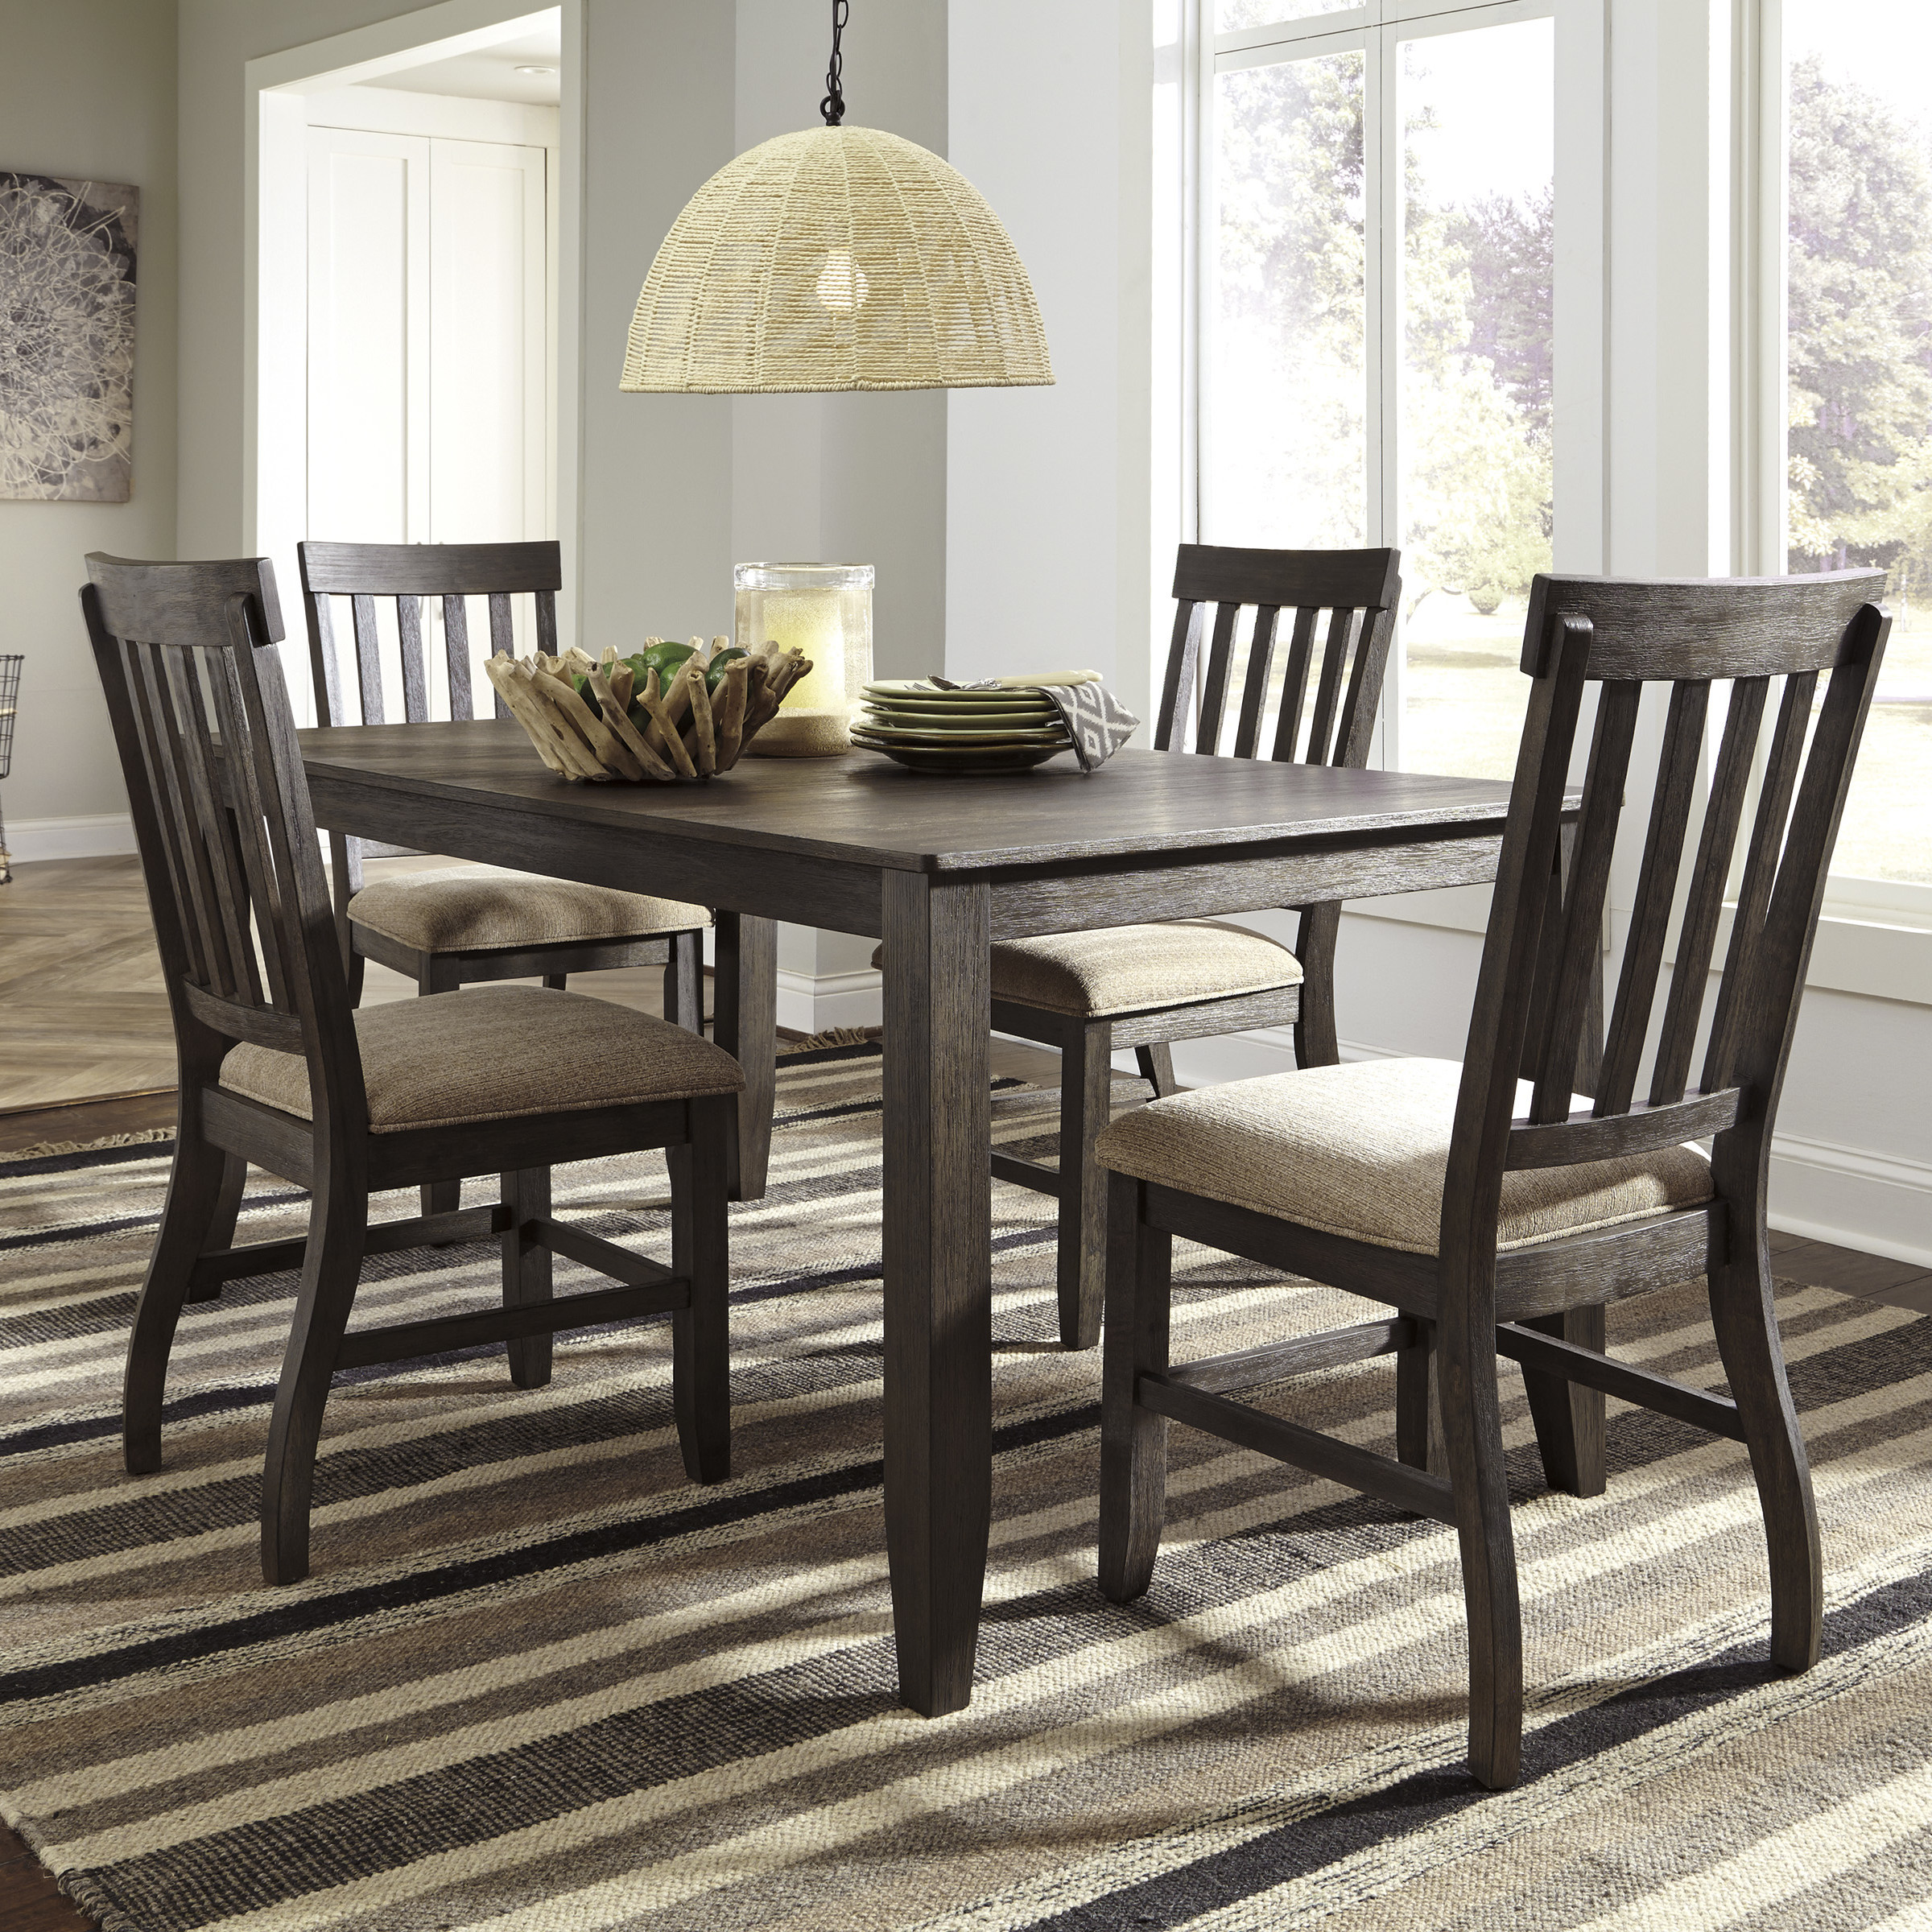 Best ideas about Ashley Furniture Dining Table . Save or Pin Signature Design by Ashley Dining Table & Reviews Now.